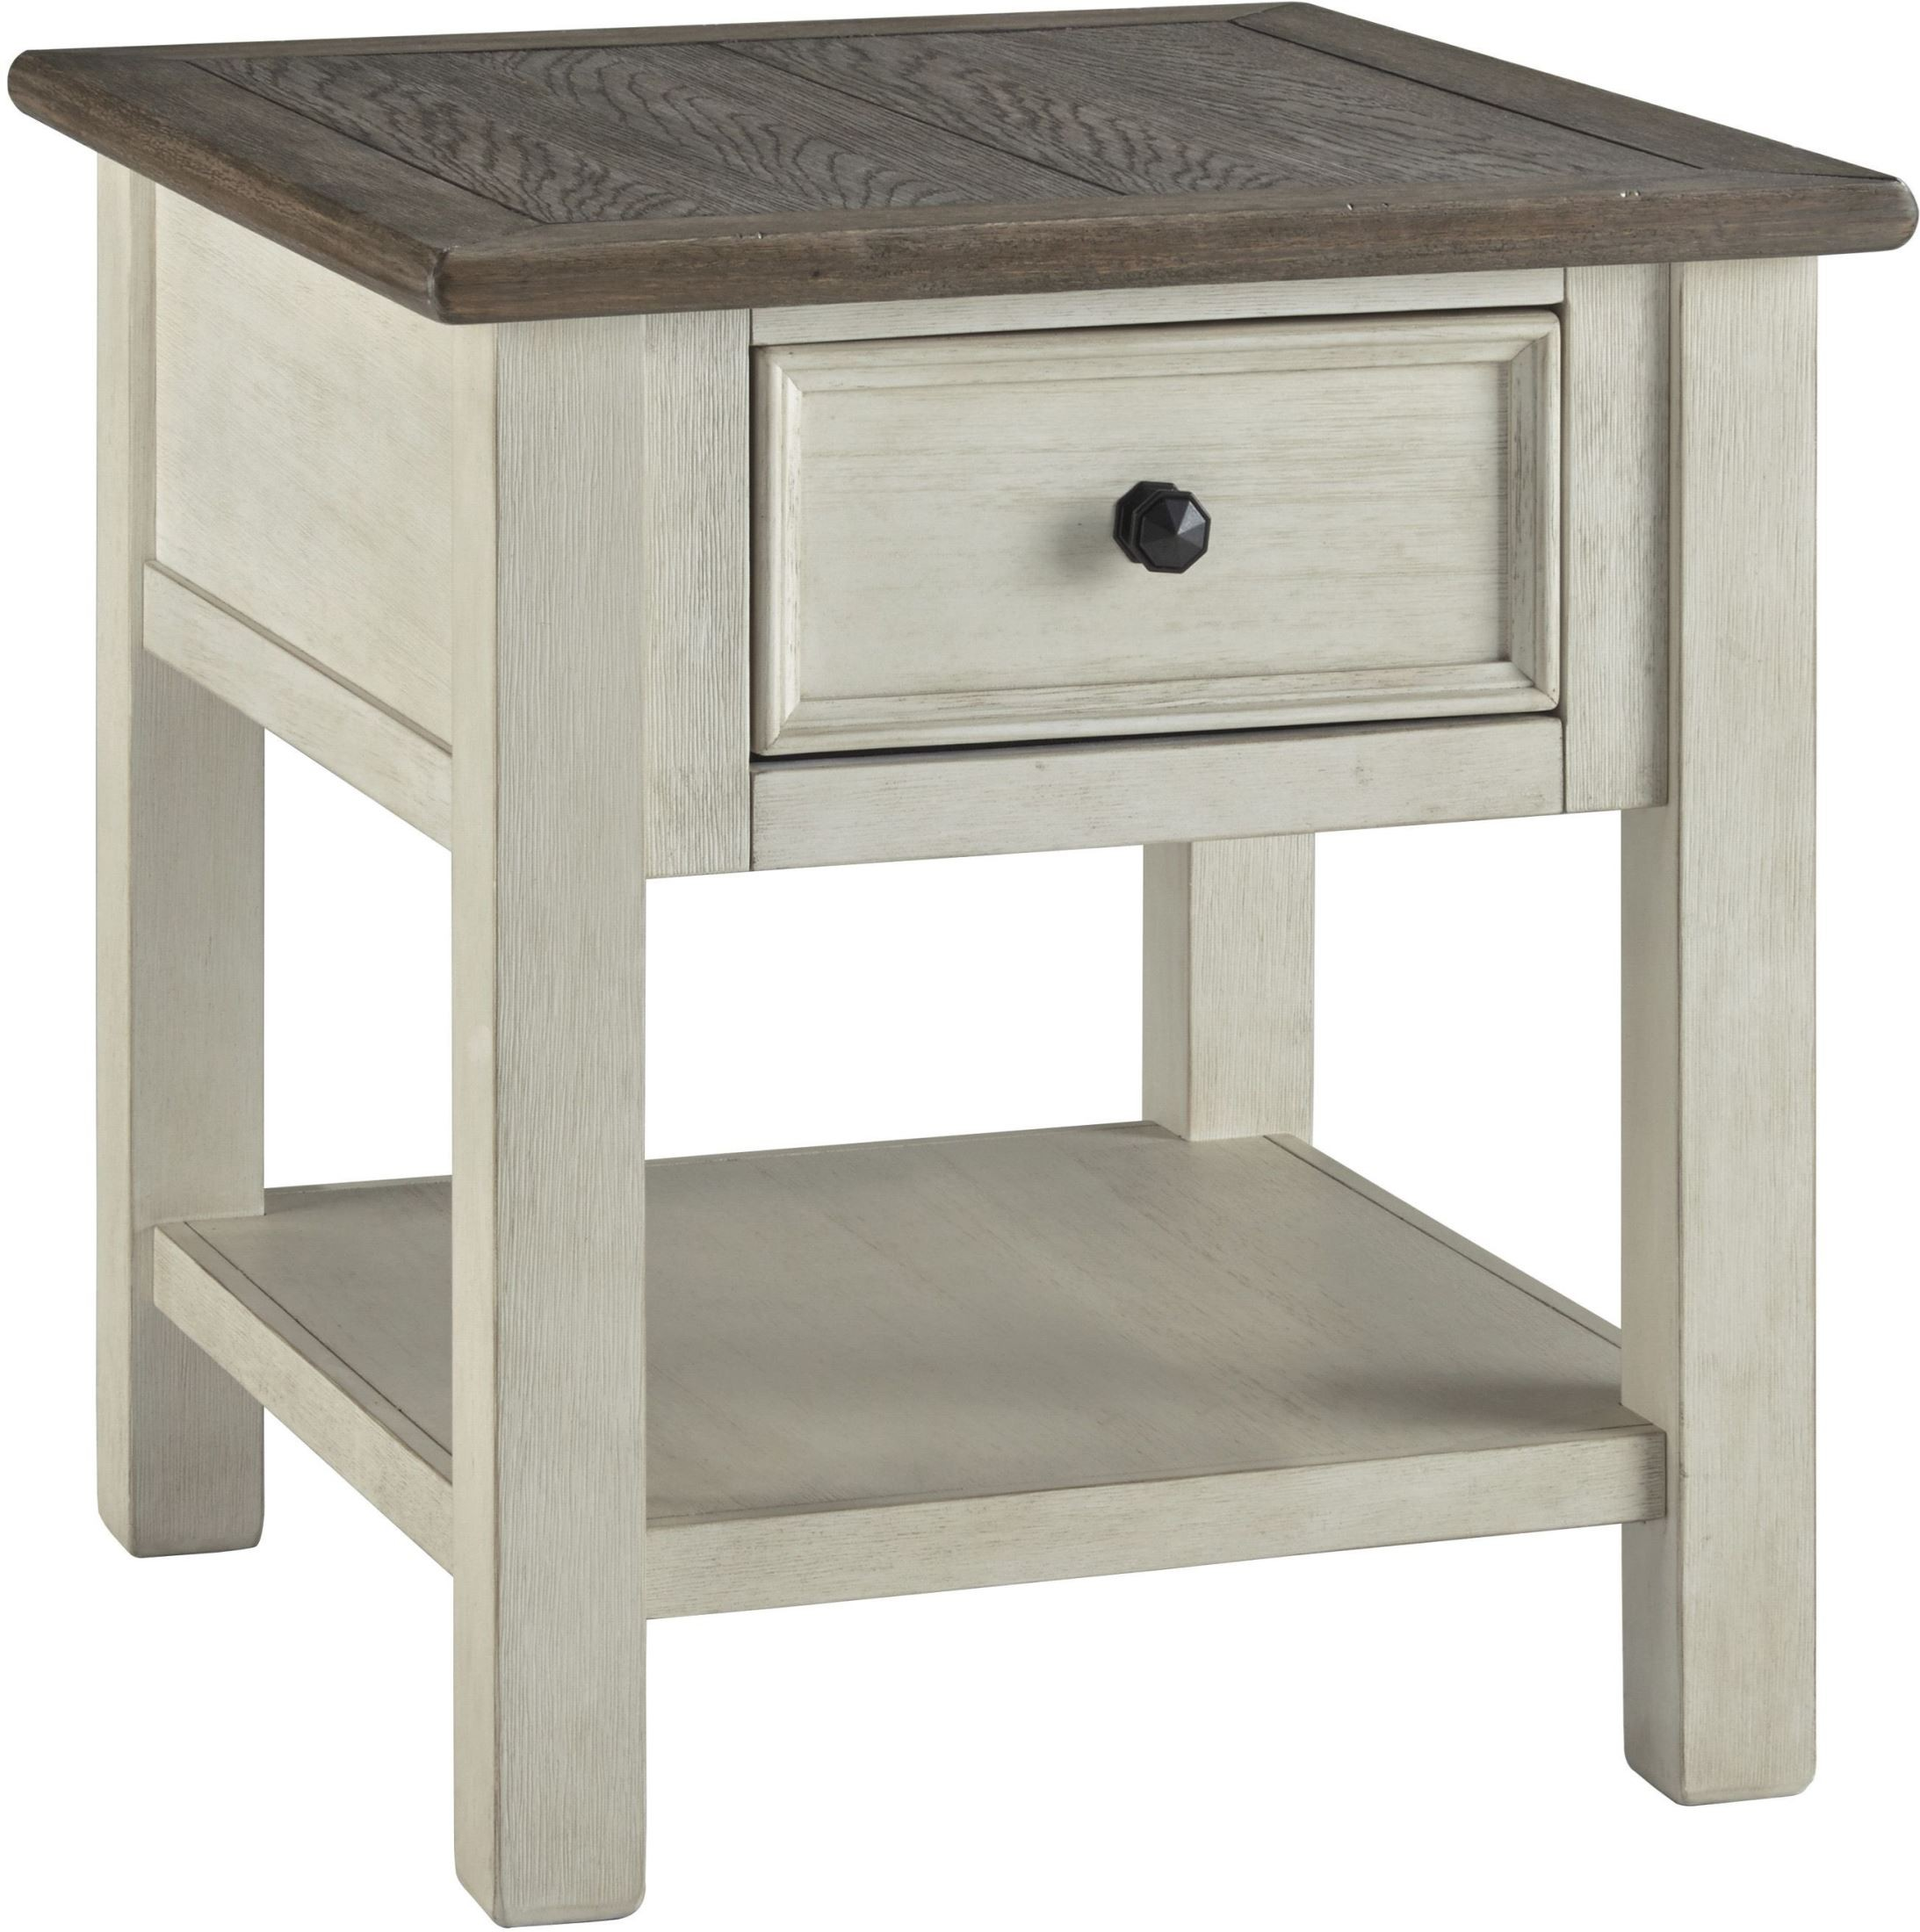 bolanburg weathered gray rectangular end table from ashley mirrored fretwork accent threshold wash pottery barn kitchen with bench pier one imports furniture night lamp wood and